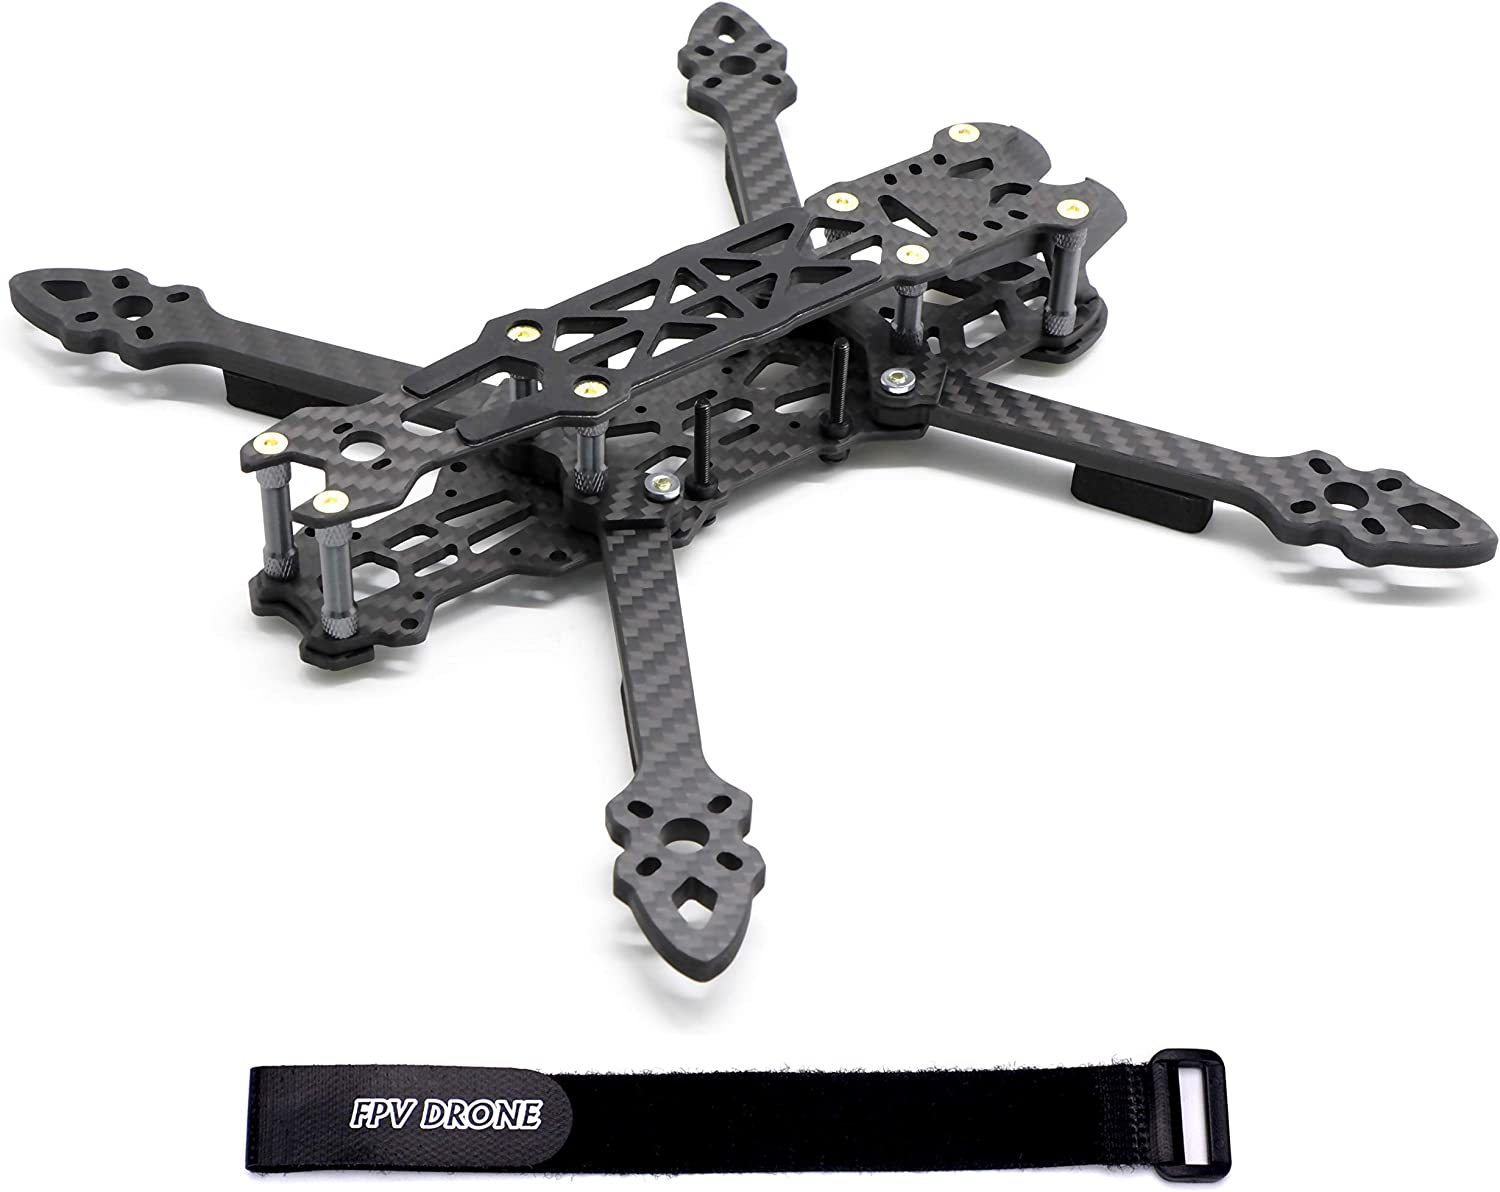 Fpvdrone 225mm Fpv Racing Drone Frame Carbon Fiber 5inch Quadcopter Freestyle Frame Kit With Lipo Battery Strap Toys Games